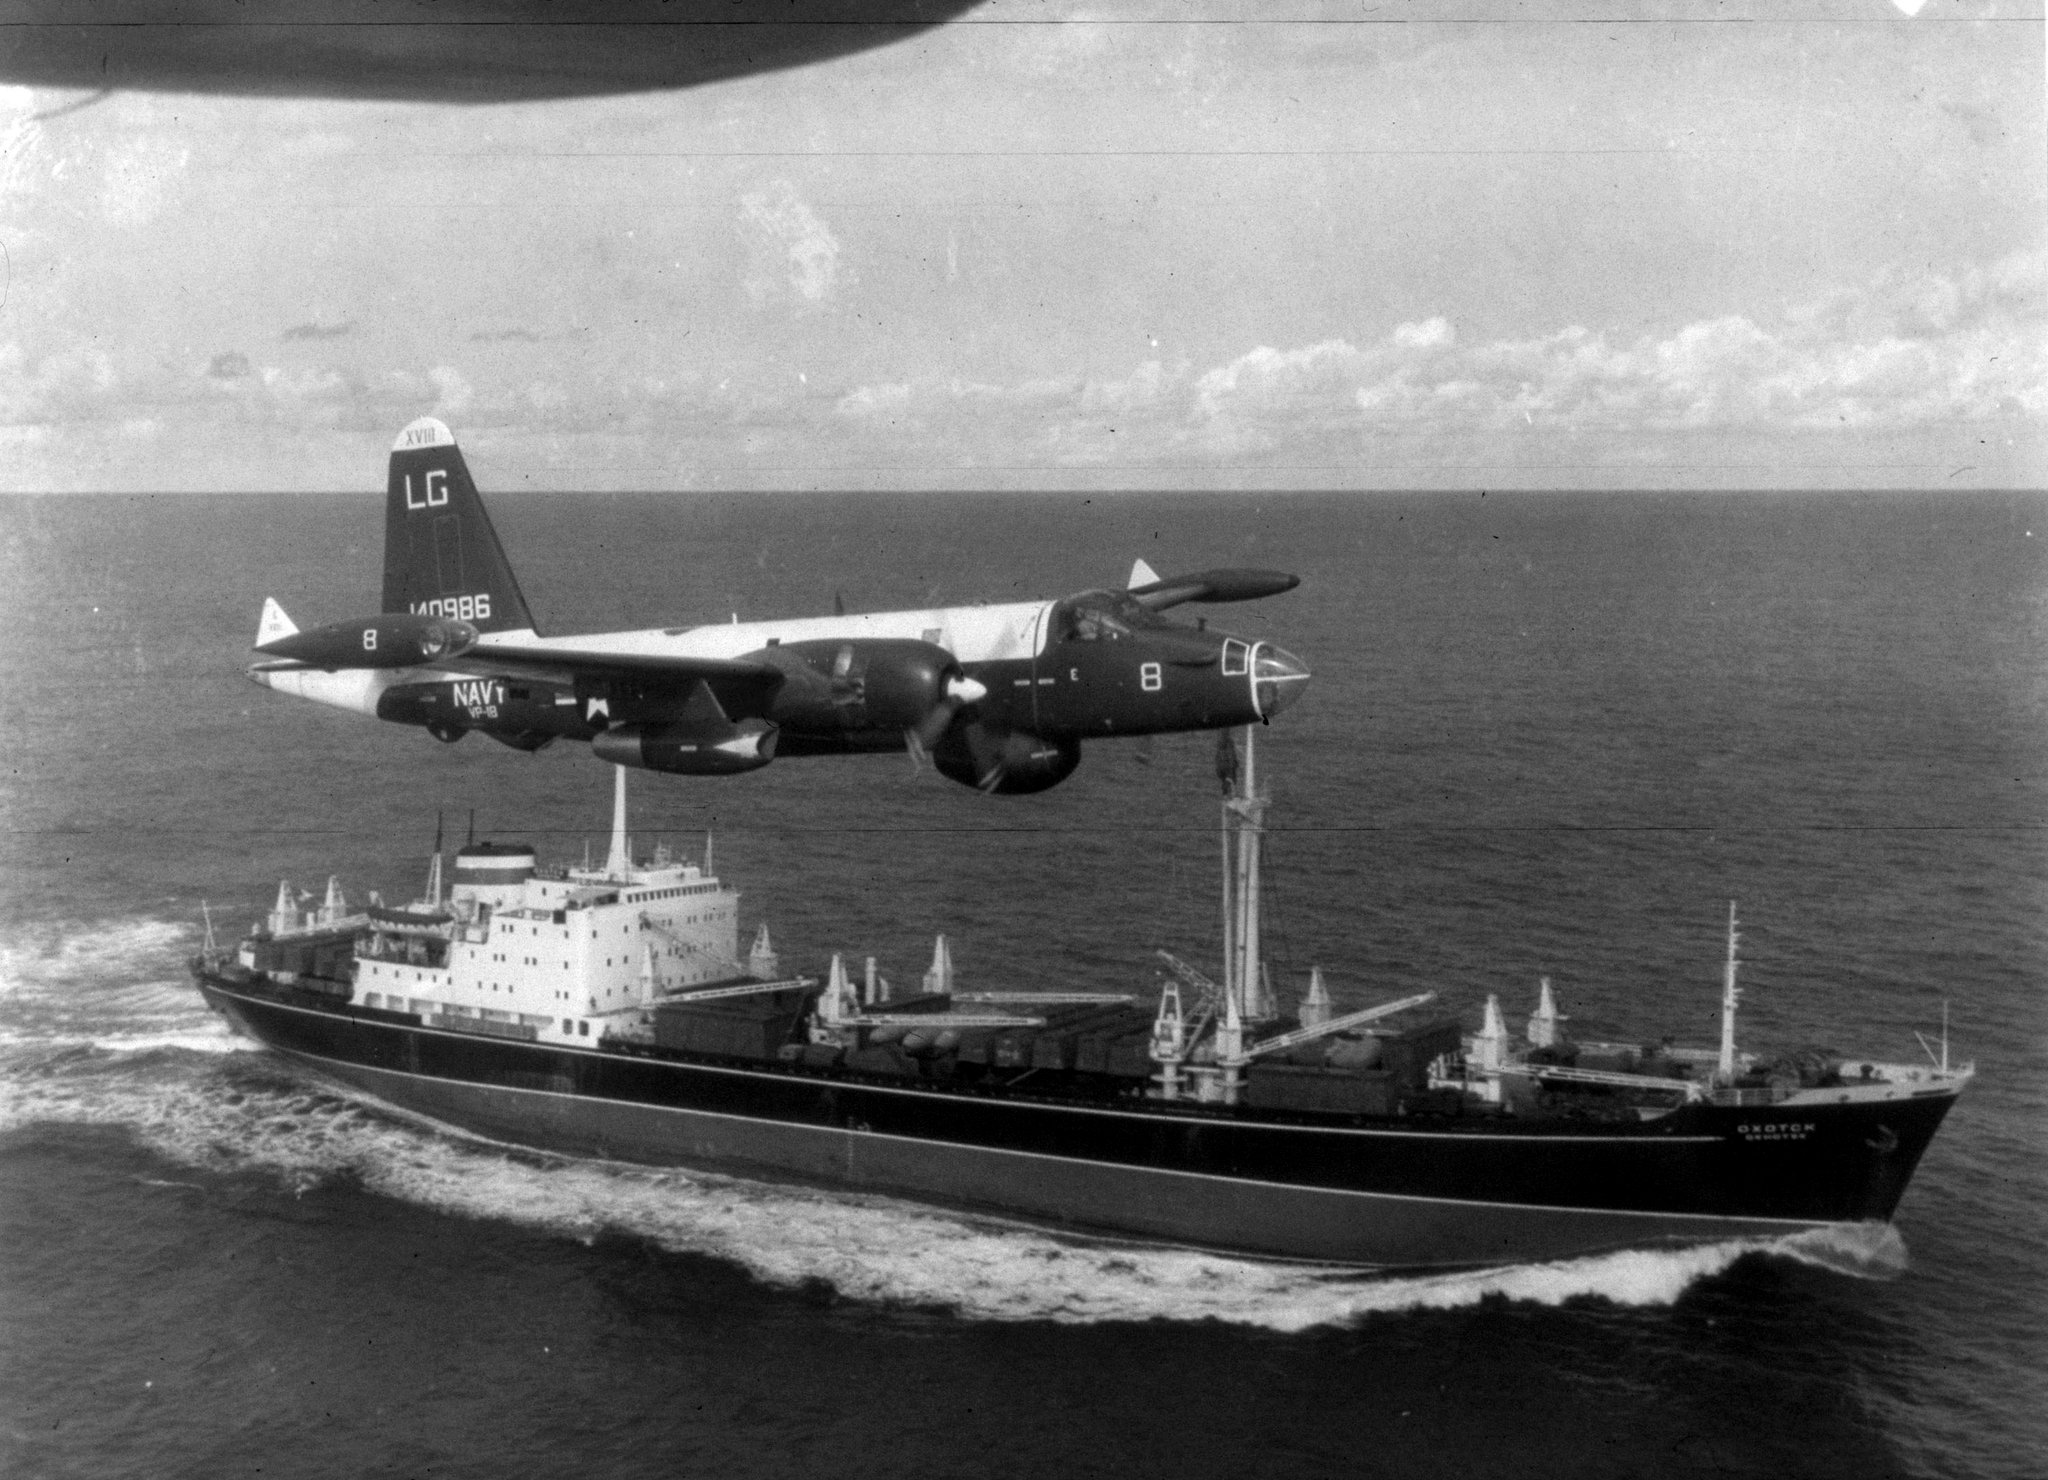 U.S. Navy patrol flying over a Soviet freighter, Cuban Missile Crisis, October 1962